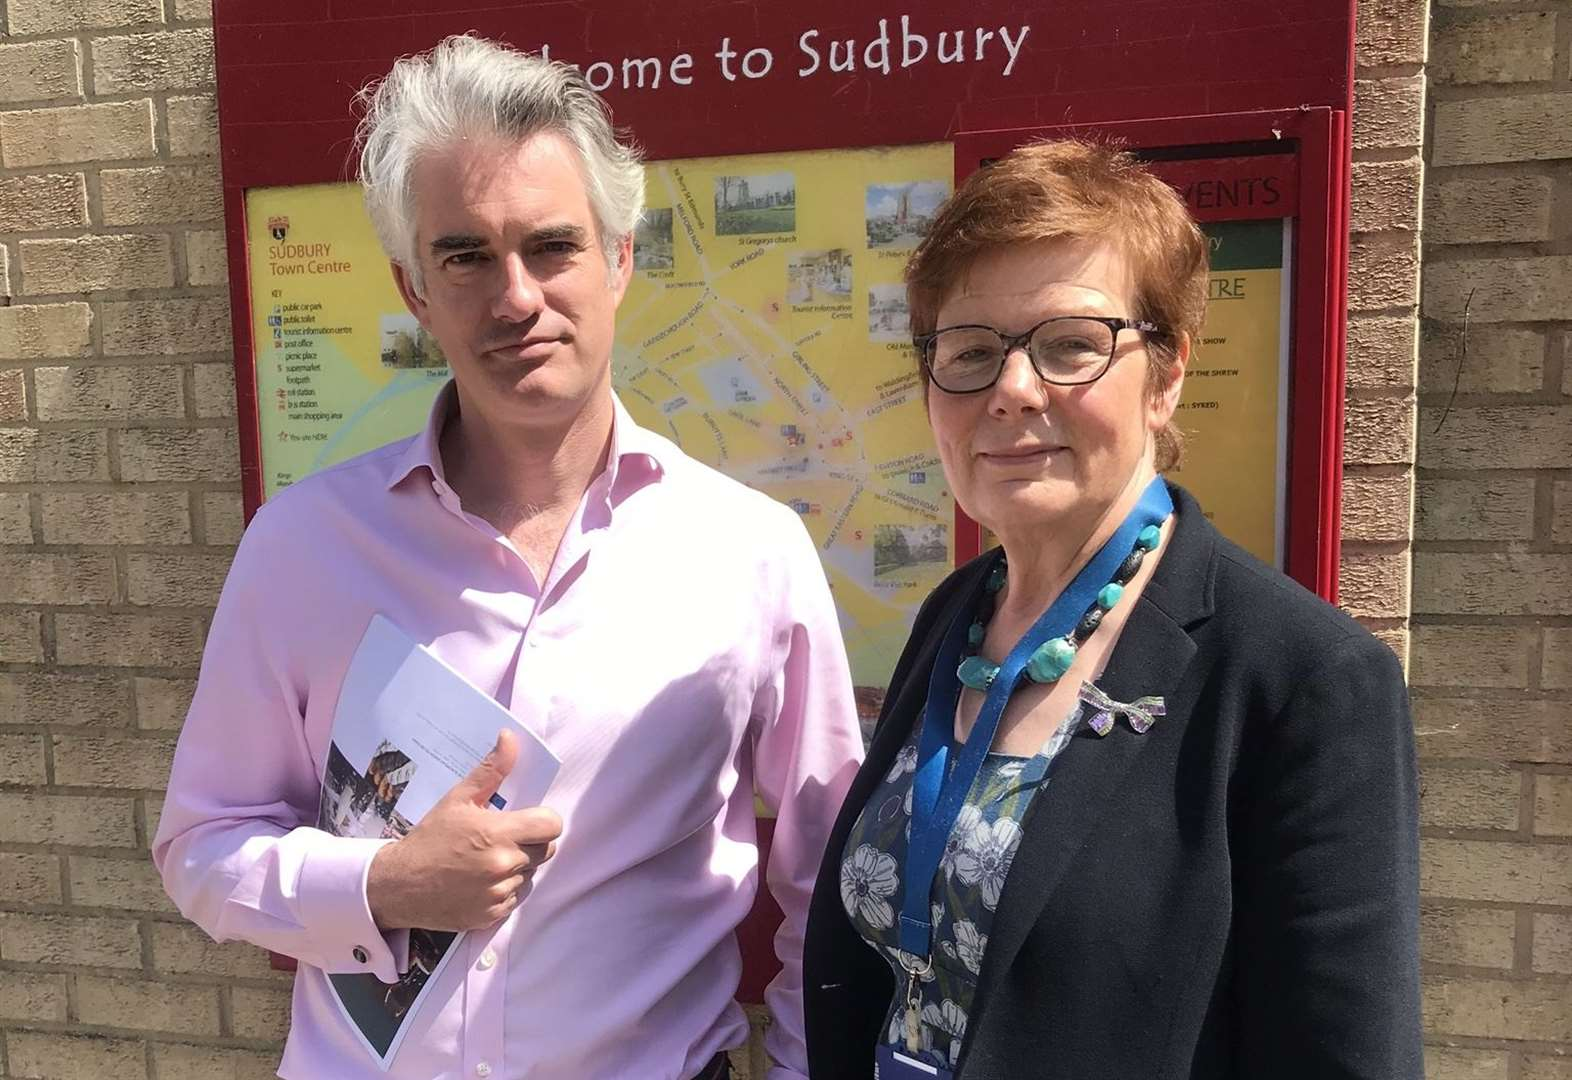 Rural bus between Sudbury and Hadleigh receives temporary lifeline from subsidy cuts